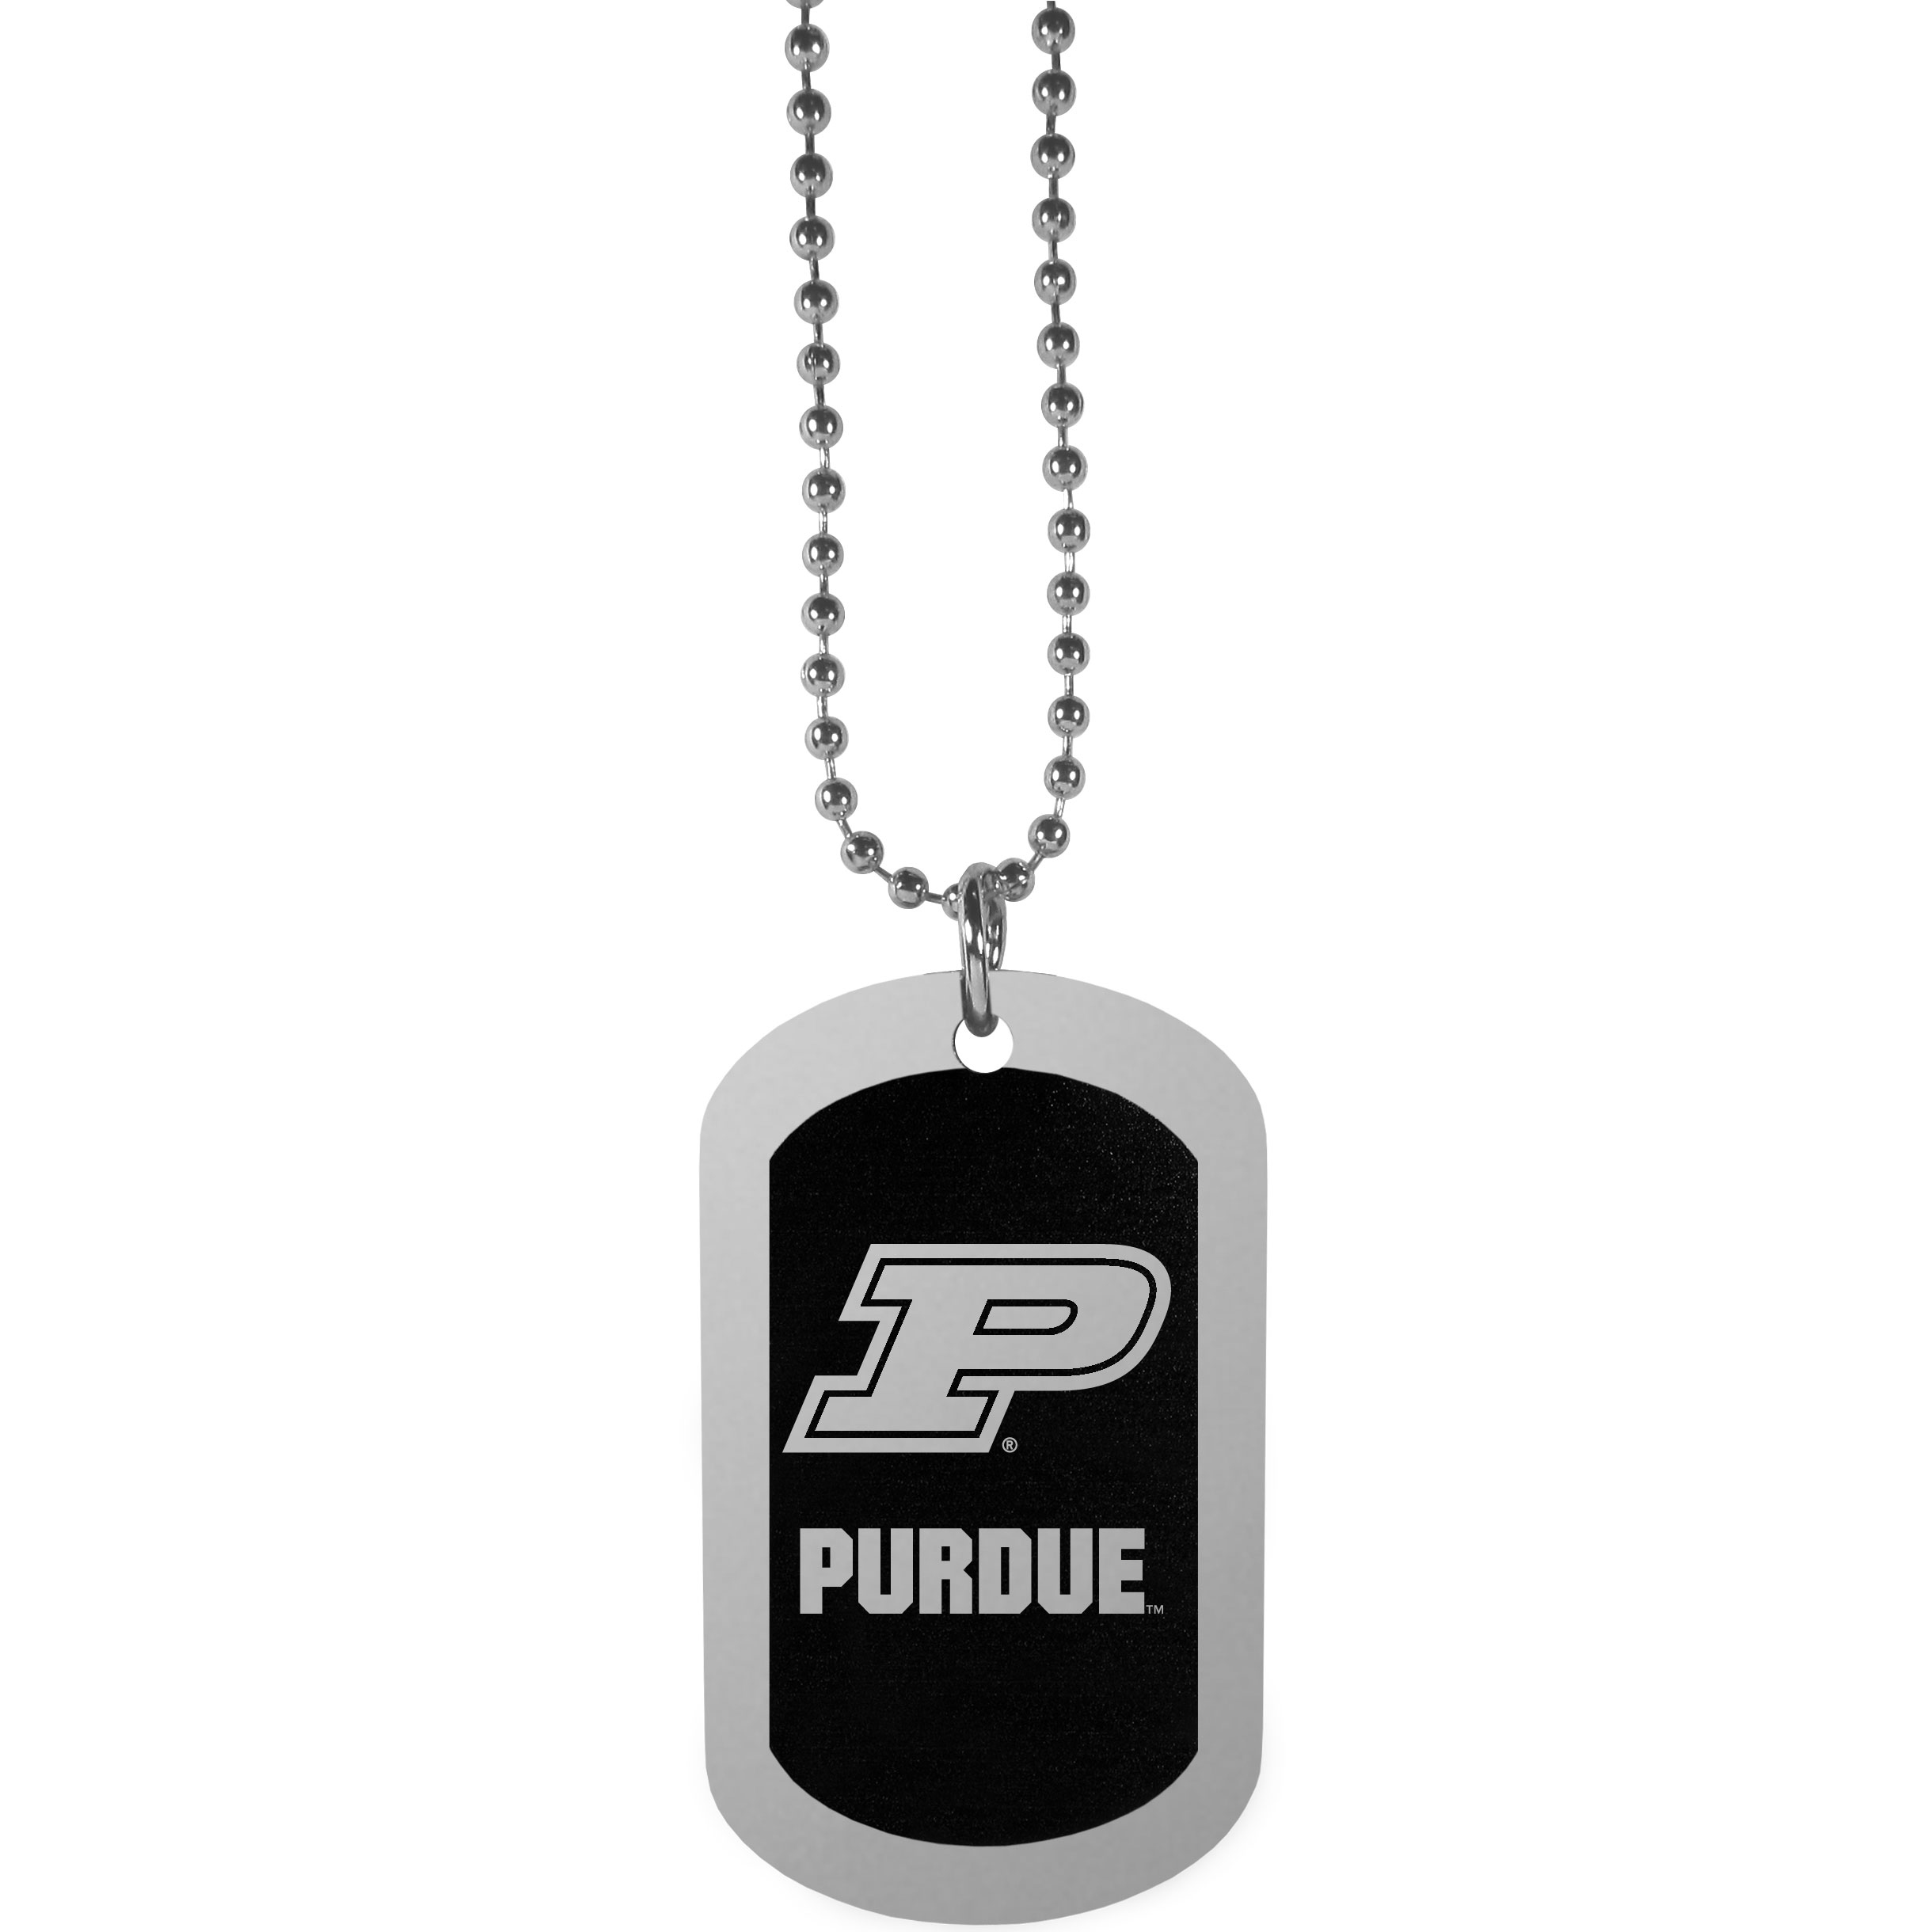 Purdue Boilermakers Chrome Tag Necklace - Dog tag necklaces are a fashion statement that is here to stay. The sporty version of the classic tag features a black printed over a high polish tag to create a bold and sporty look. The tag comes on a 26 inch ball chain with a ball and joint clasp. Any Purdue Boilermakers would be proud to wear this attractive fashion accessory.